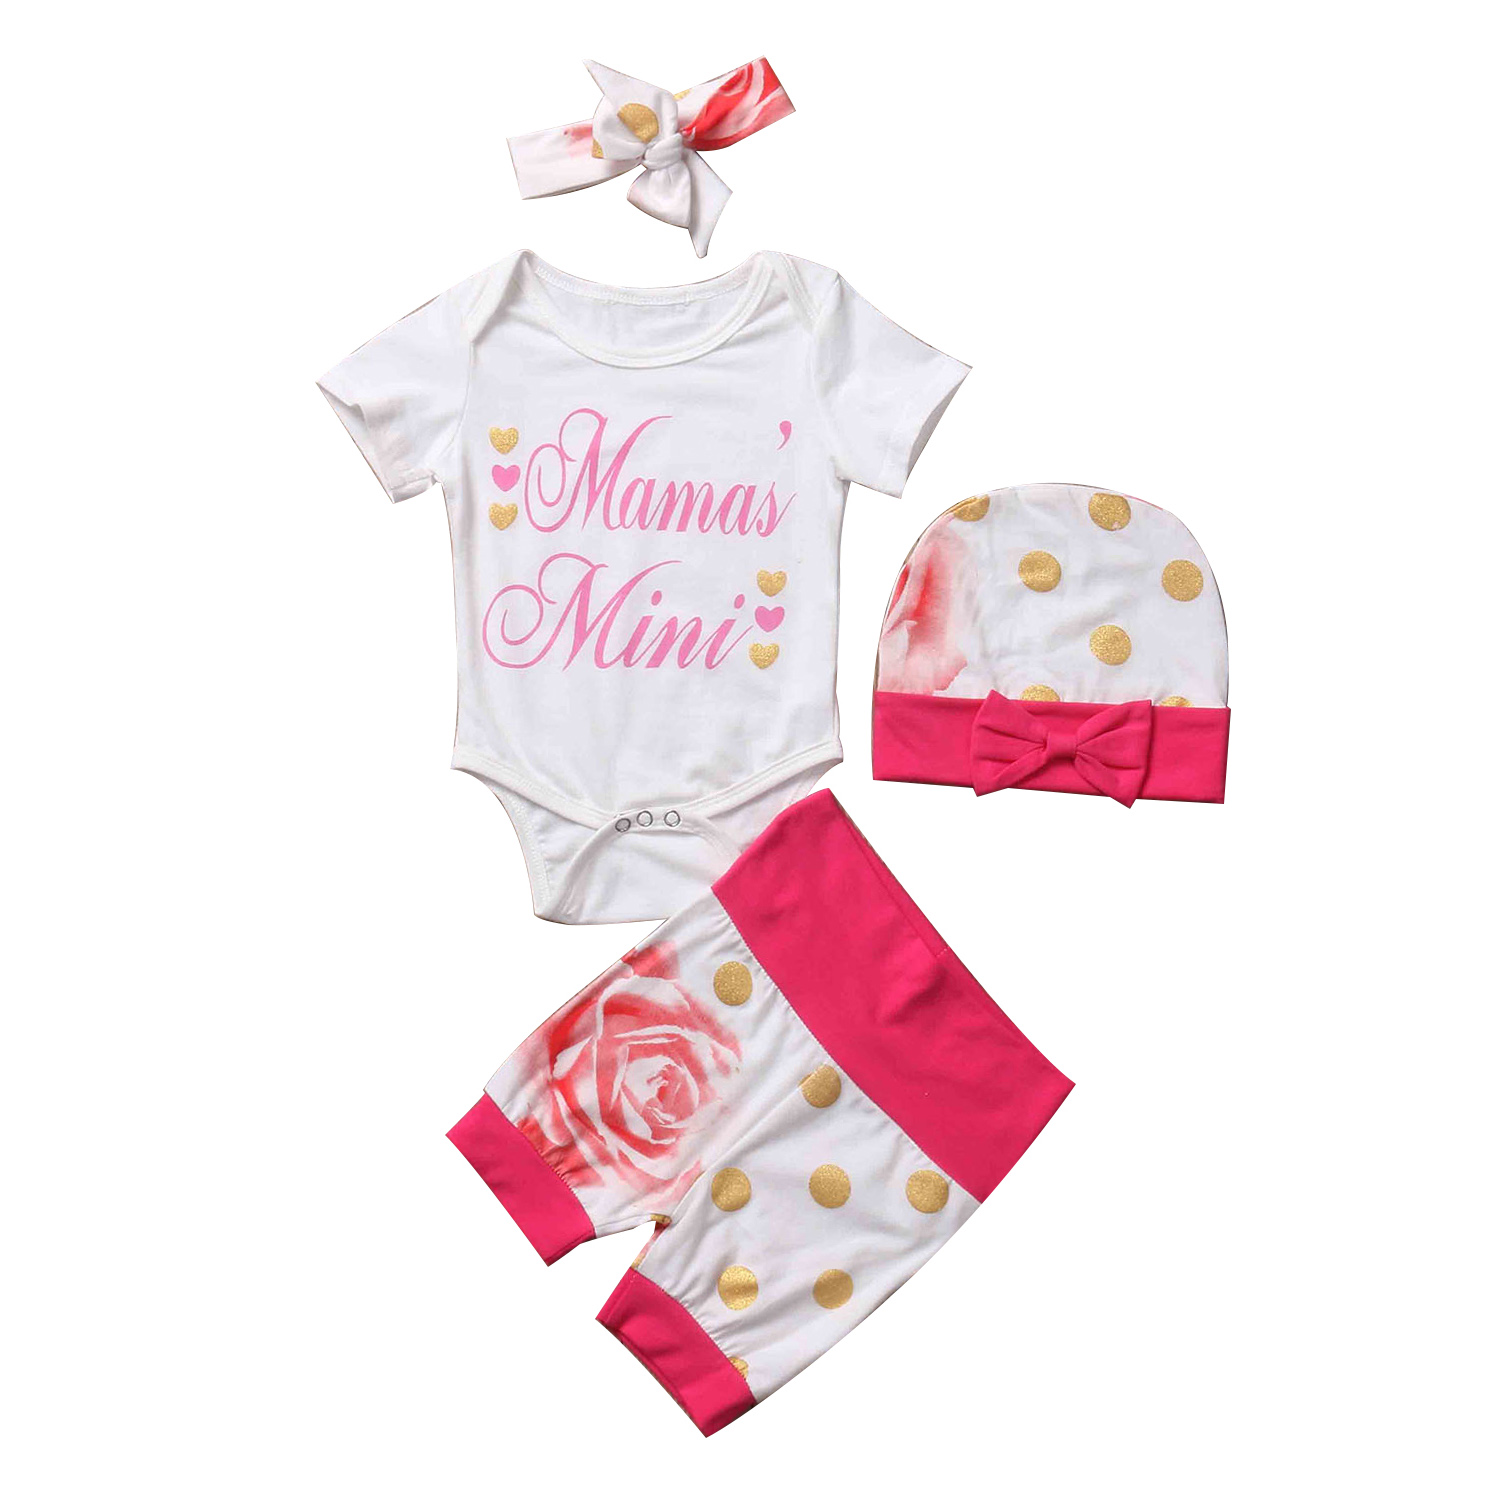 4Pcs Summer Newborn Infant Baby Girls Clothes Short Sleeve White Romper Jumpsuit+Floral Pants+Hat+Headwear Outfits Cute Baby Set